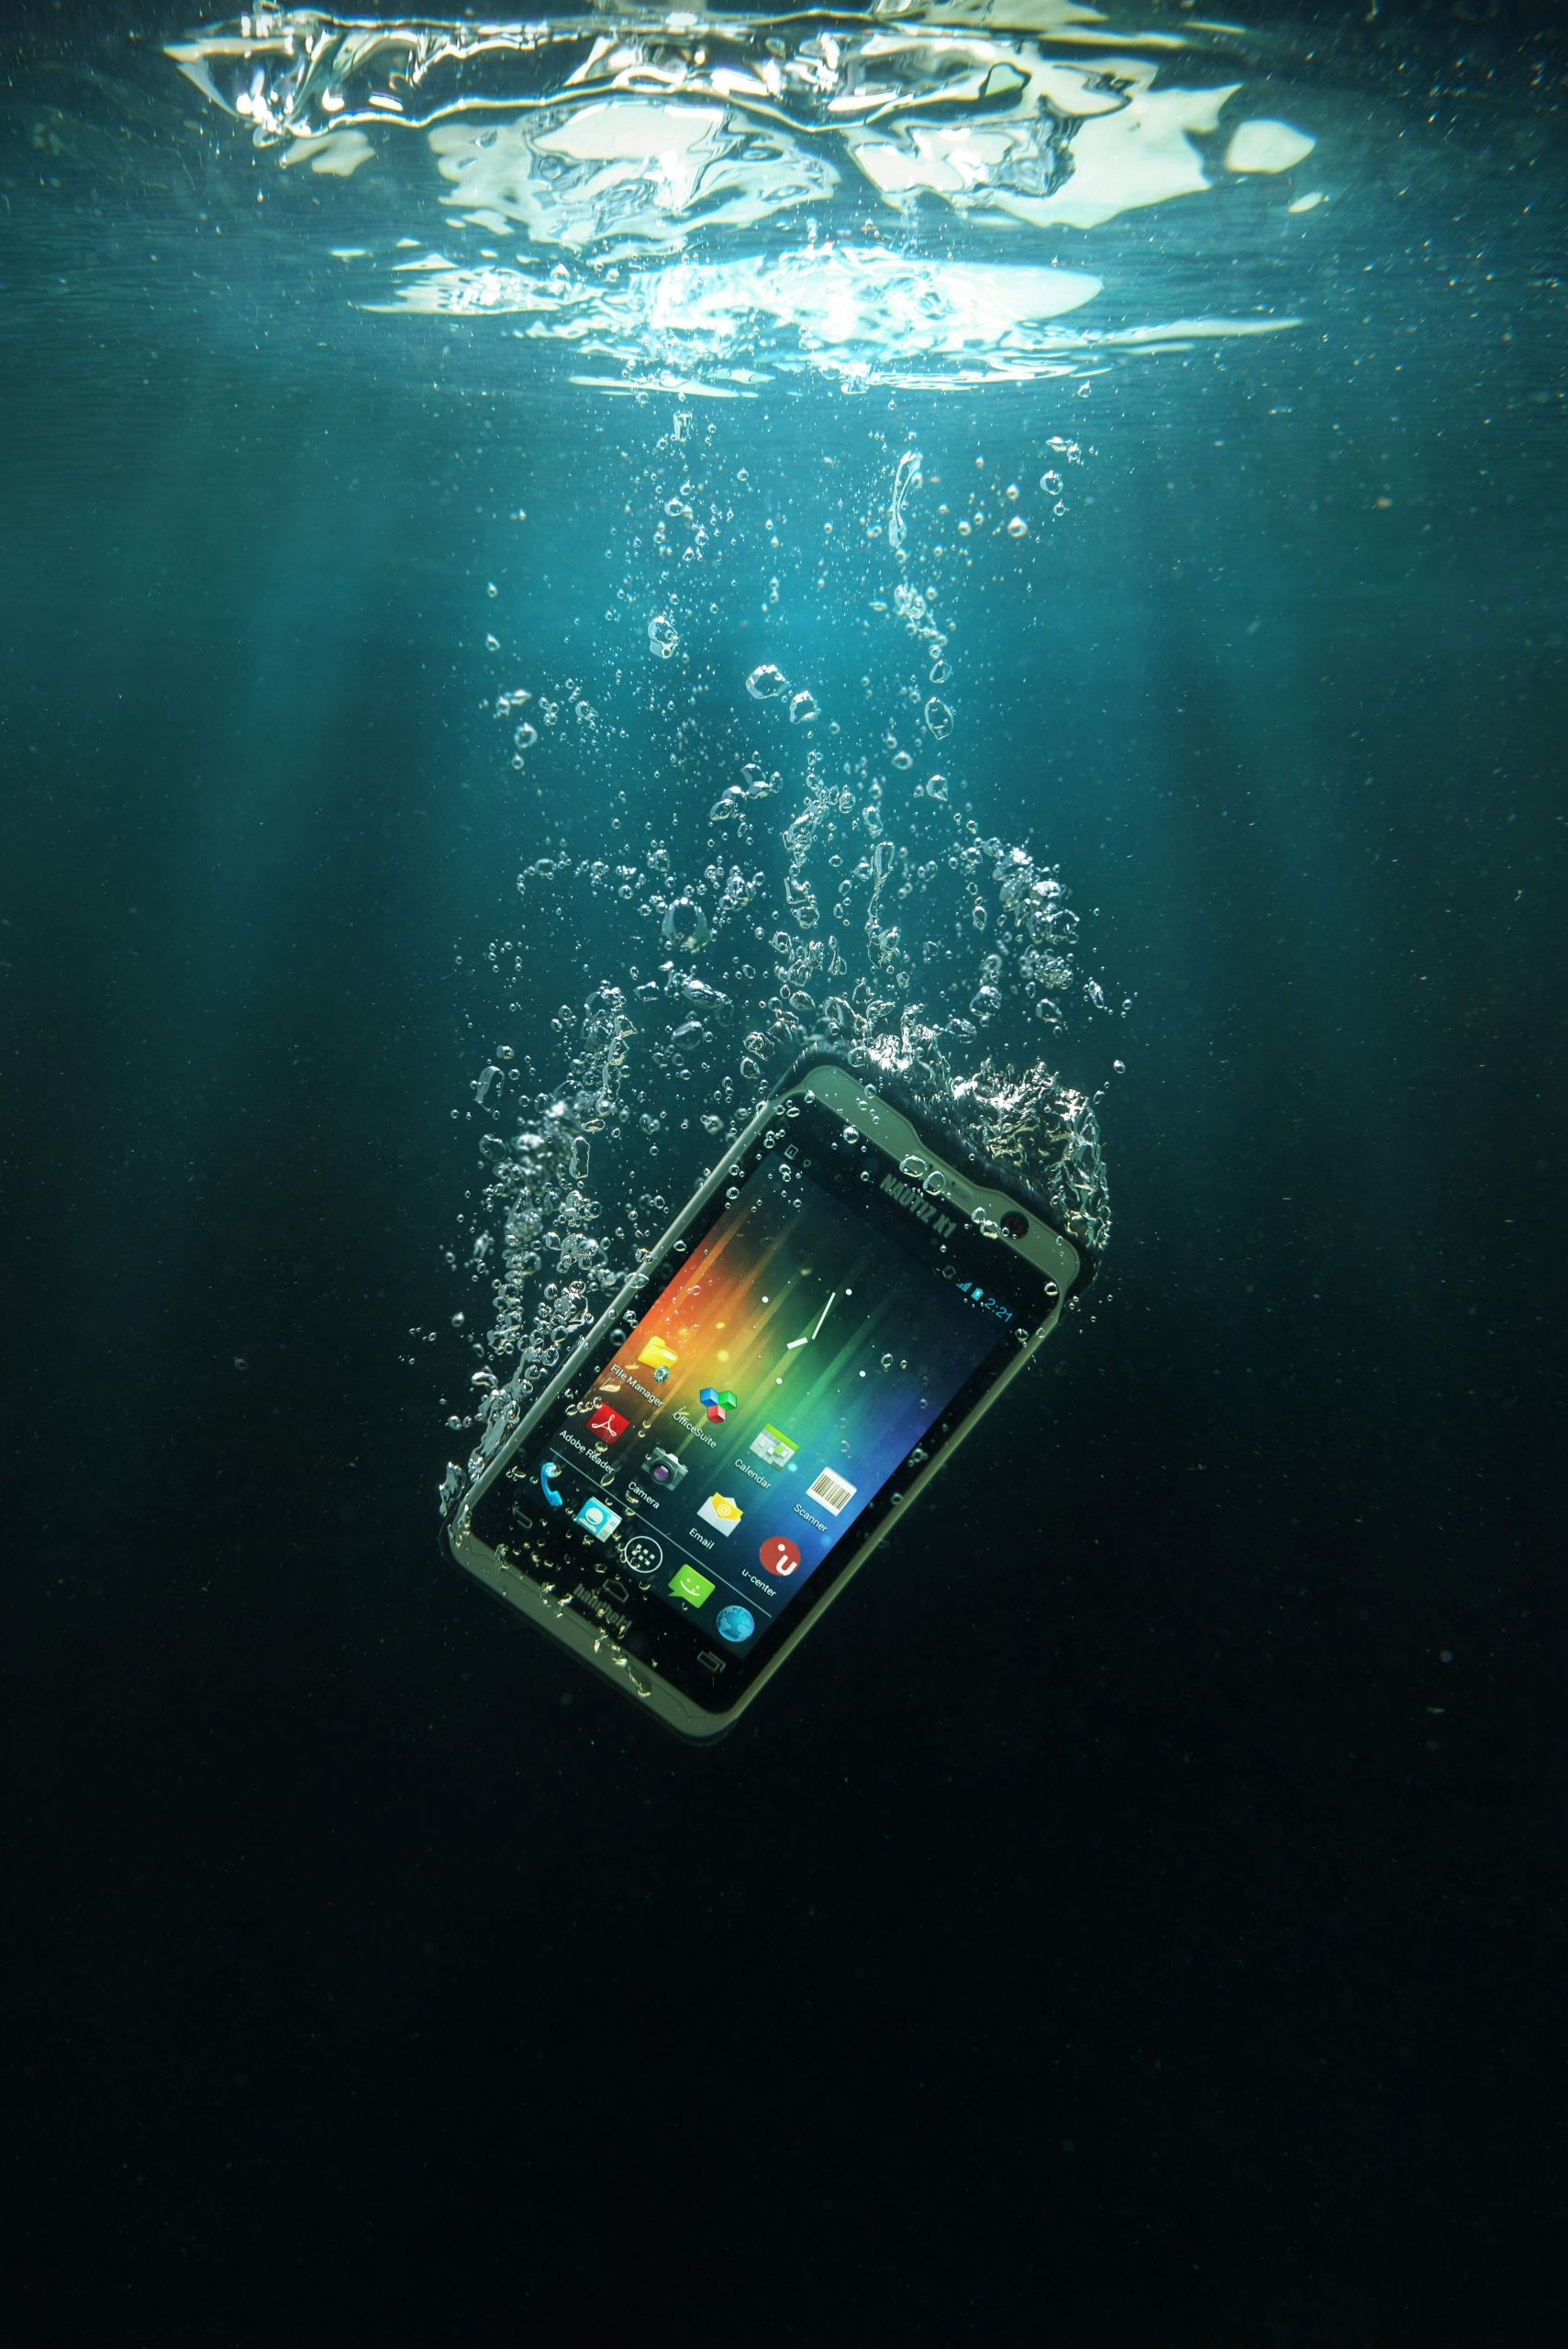 Nautiz X1 ultra rugged smartphone waterproof